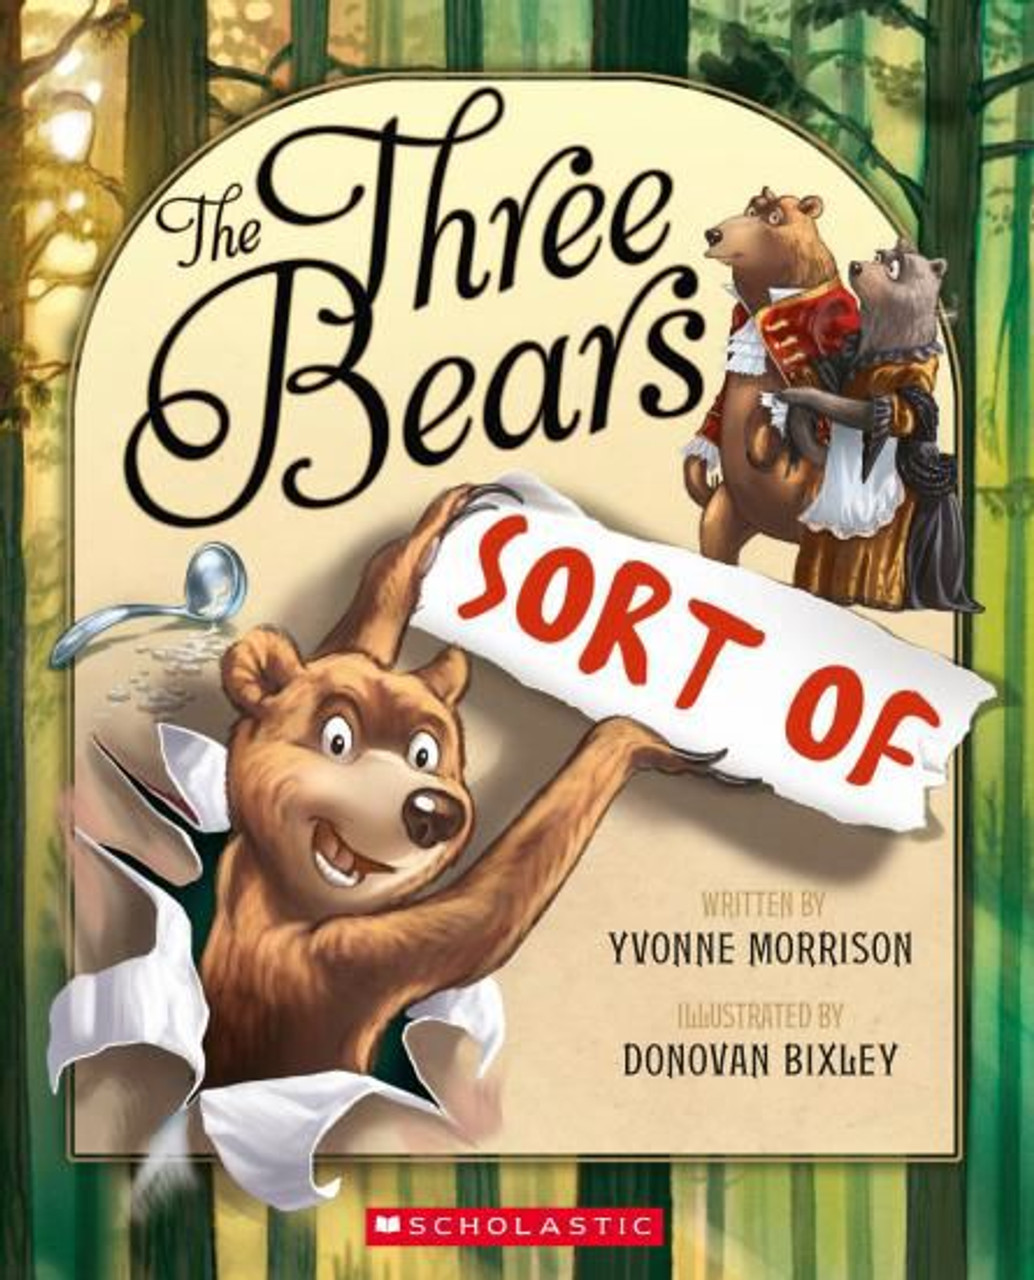 The Three Bears...Sort of